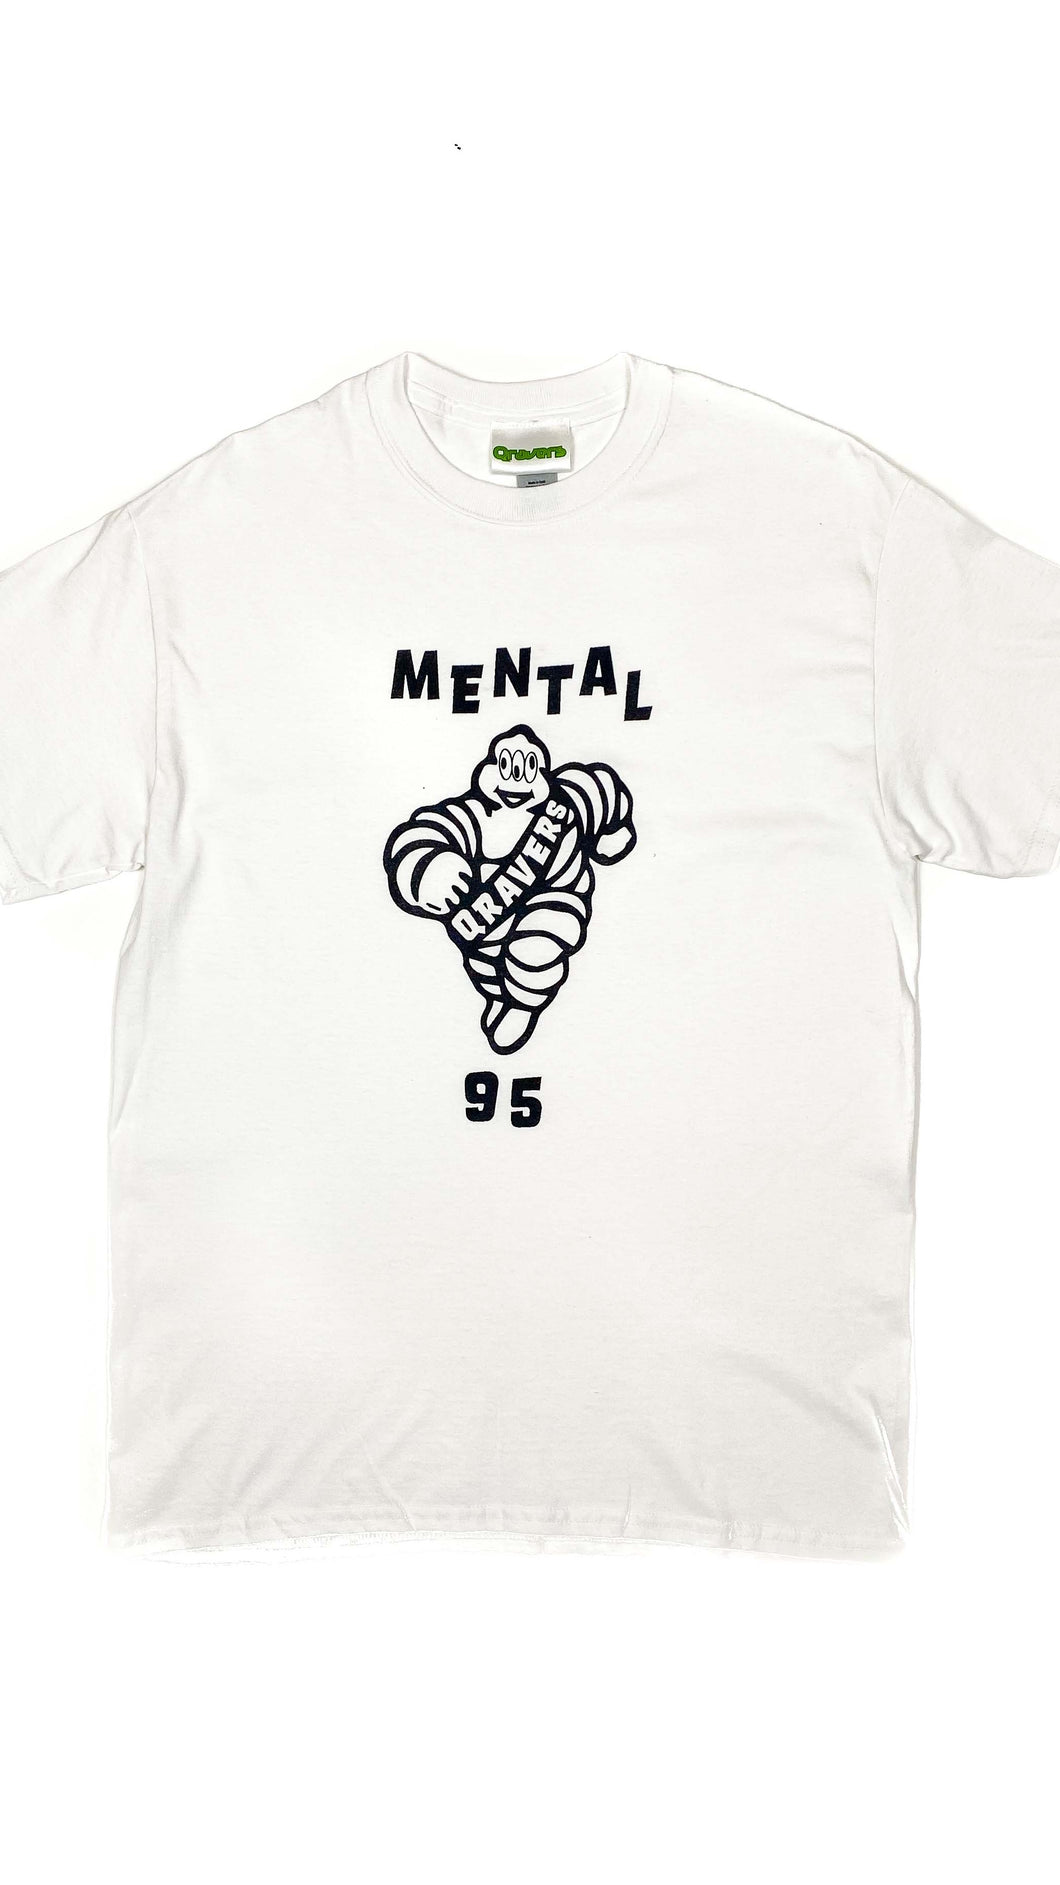 Mental 95 Rave Tshirt White (BOGO50%OFF)